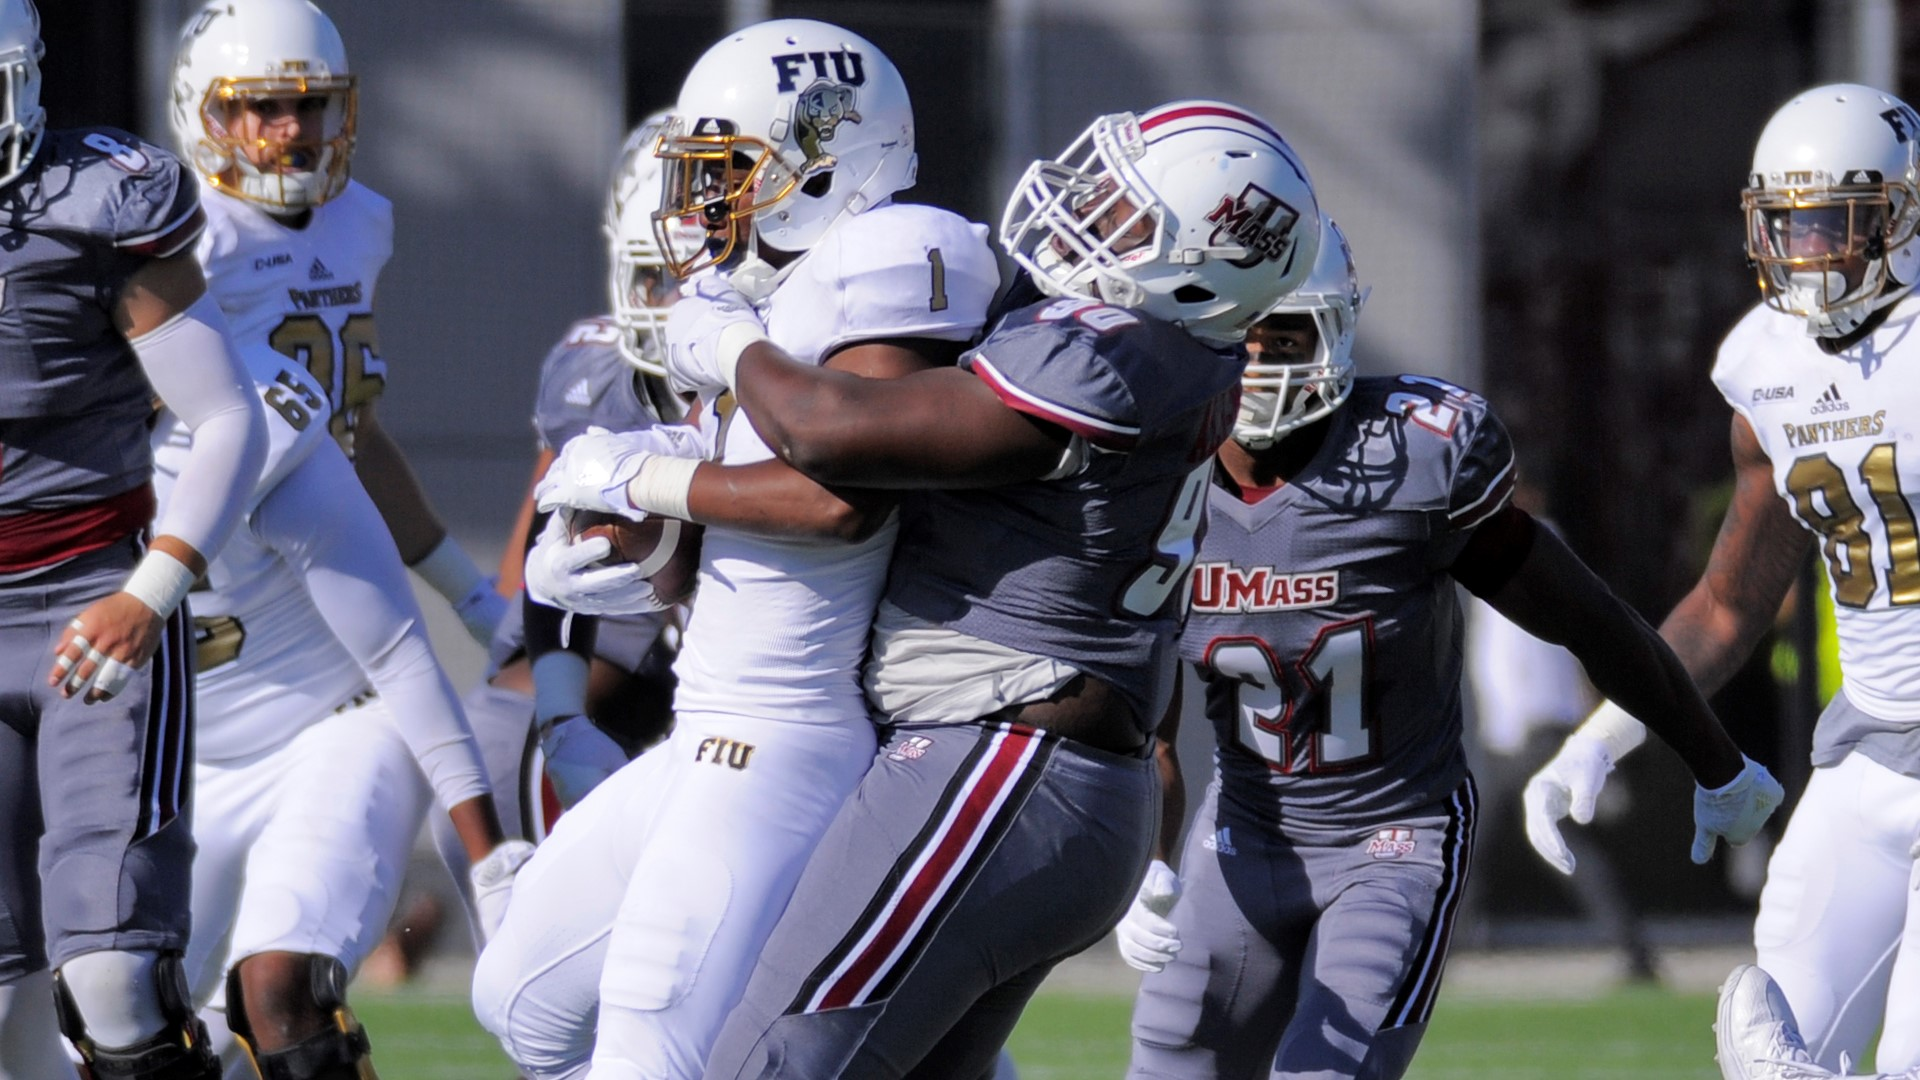 Massachusetts And Fiu Finalize Home And Home Football Series